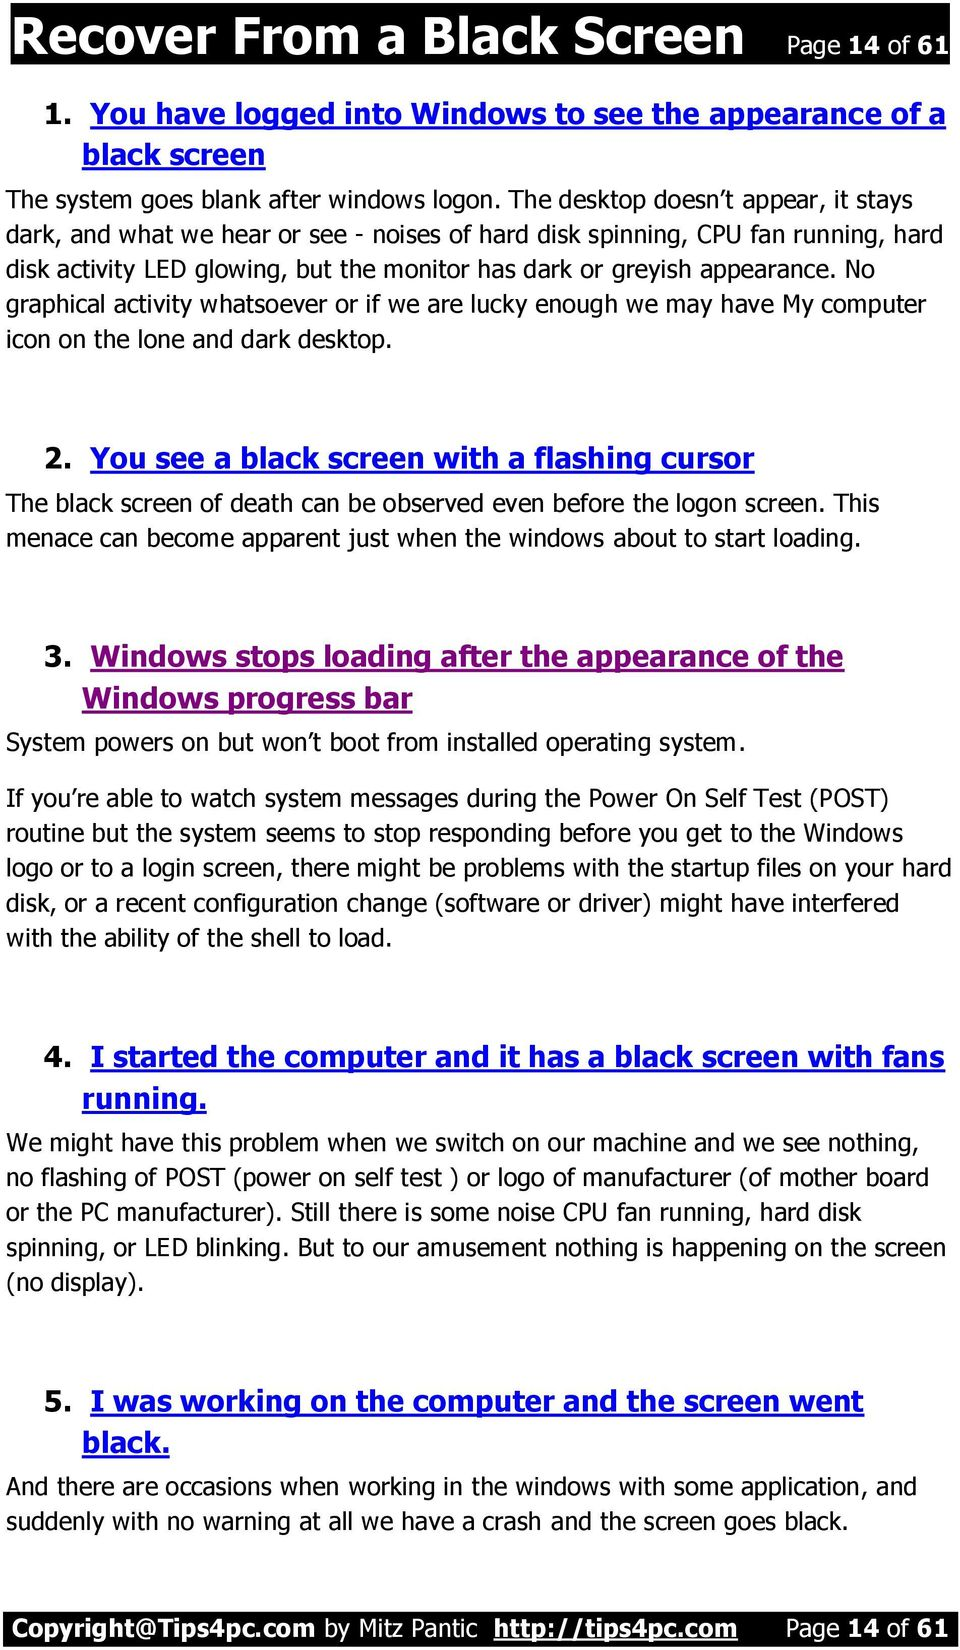 Recover Your Computer from a Black Screen - PDF